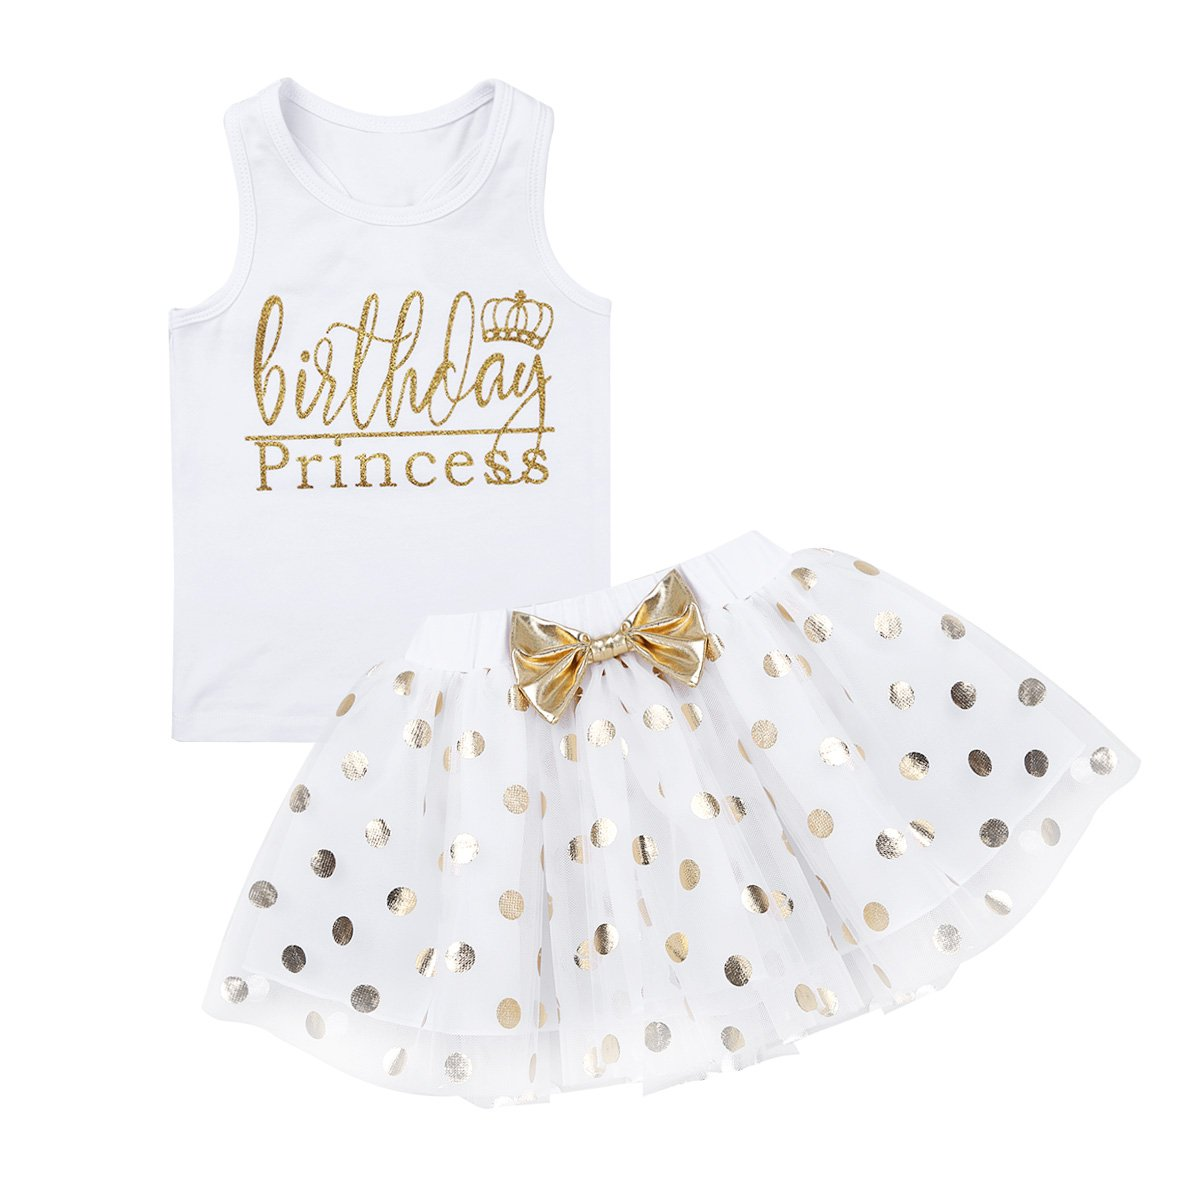 dPois Little Princess Girls' First Birthday Outfits Glittery Monogram Tank Top with Polka Dot Skirts 2 Pieces Set White 4-5